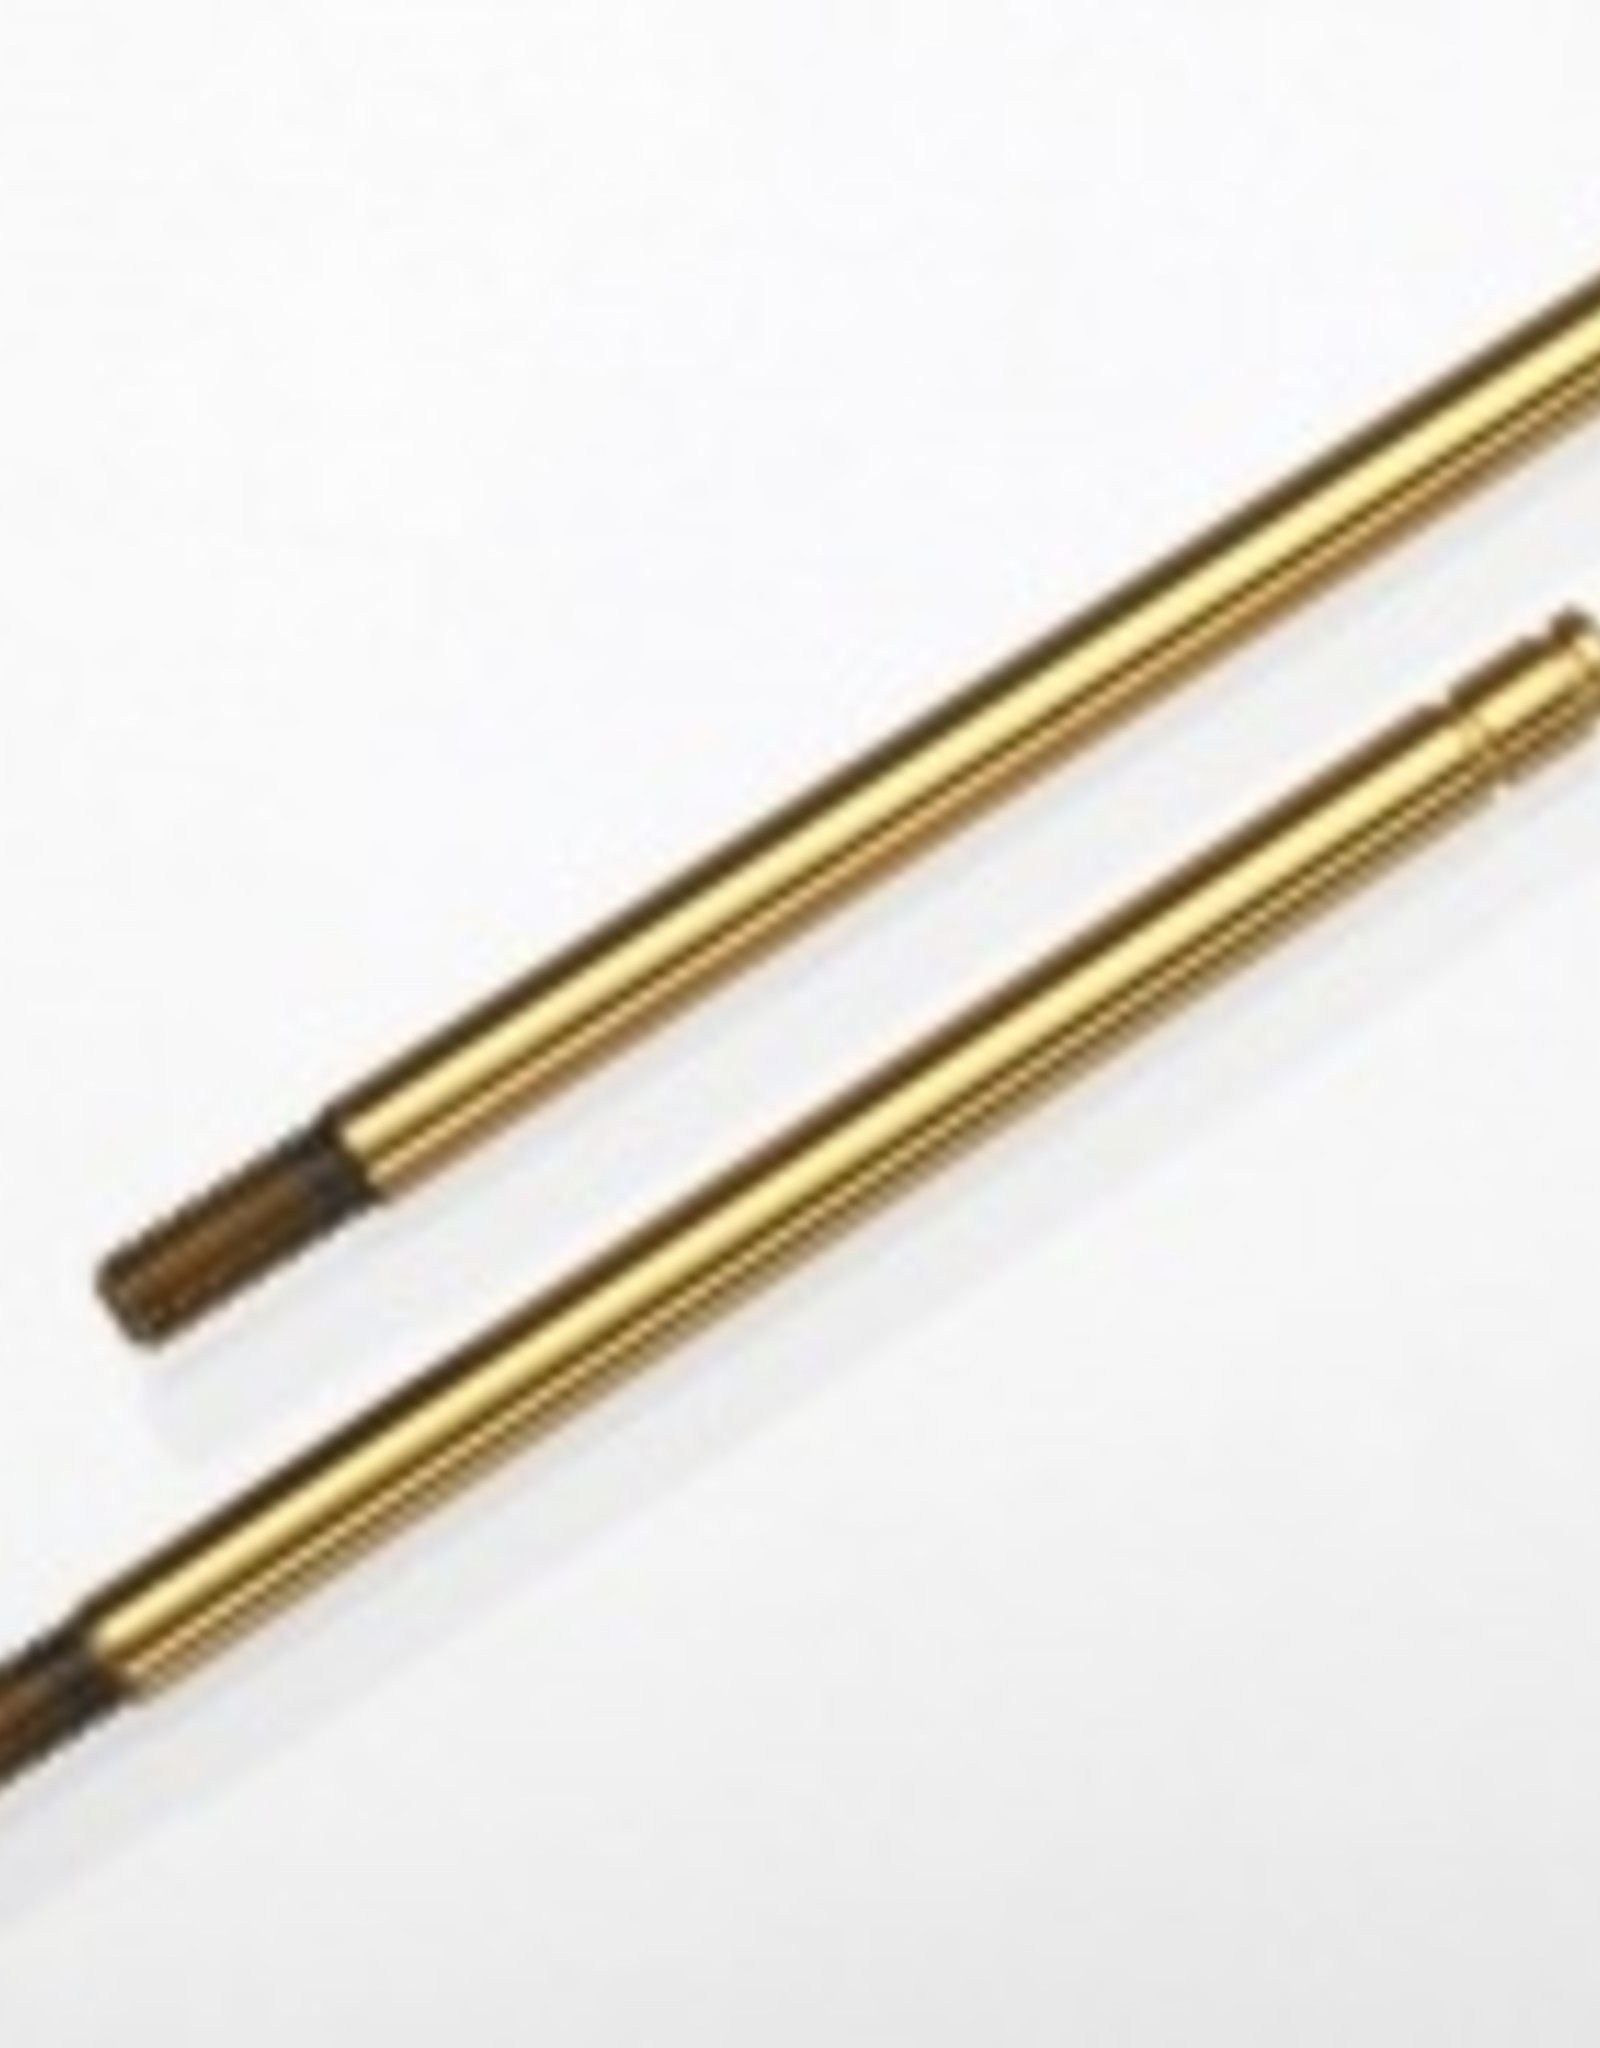 Traxxas Traxxas Shock shafts, hardened steel, titanium nitride coated (long) (2) TRA1664T